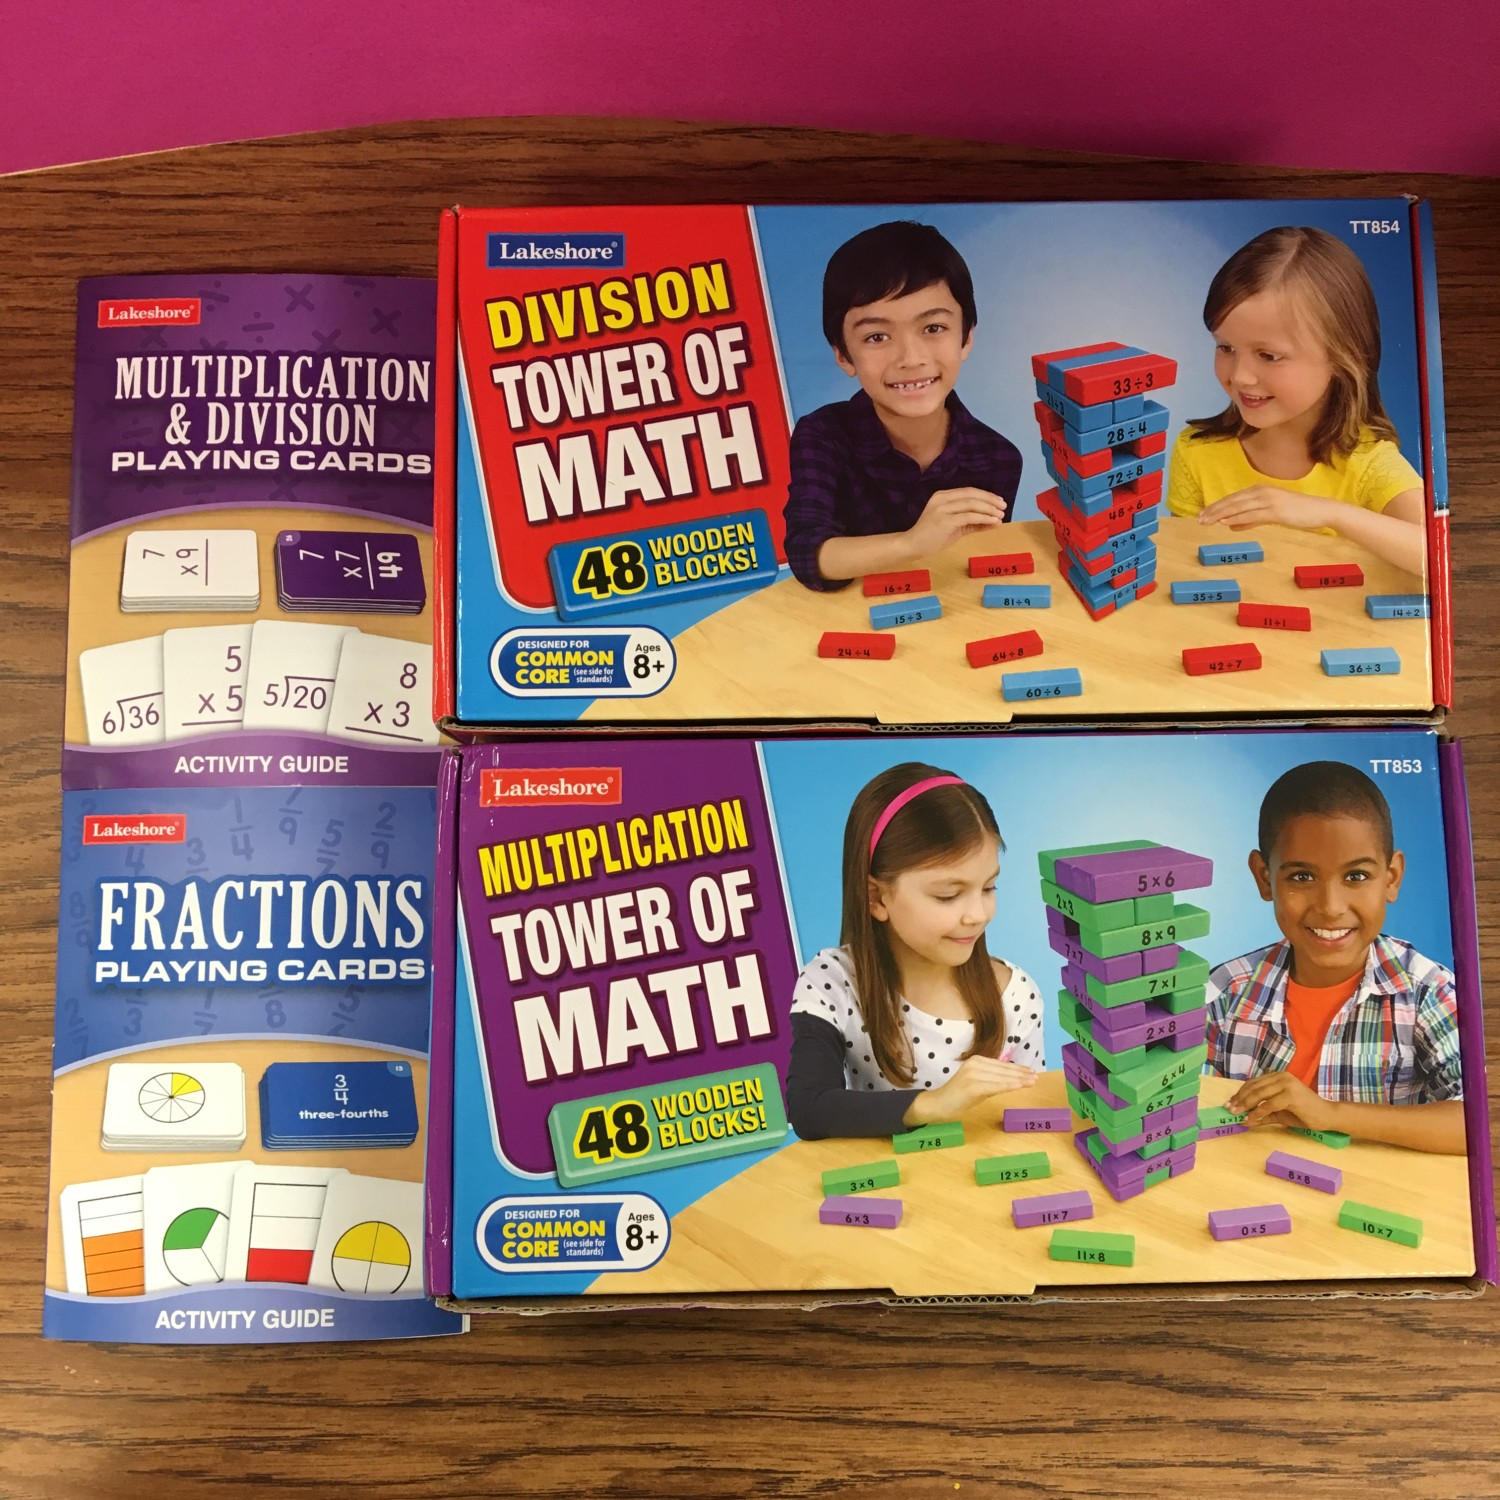 Multiplication and Division Tower of Math games and playing cards